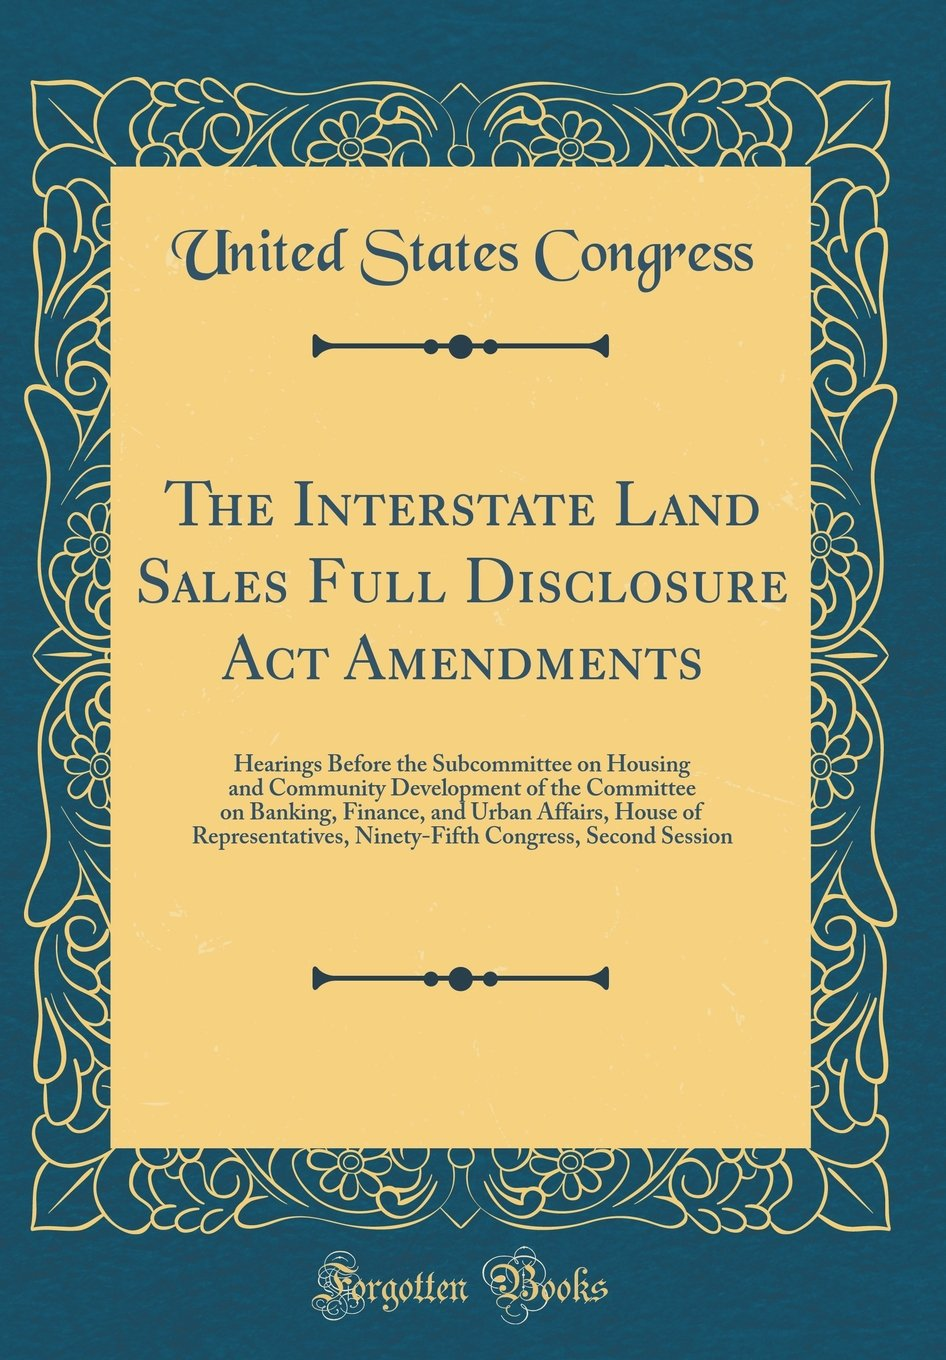 The Interstate Land Sales Full Disclosure Act Amendments: Hearings Before the Subcommittee on Housing and Community Development of the Committee on ... Ninety-Fifth Congress, Second Session pdf epub